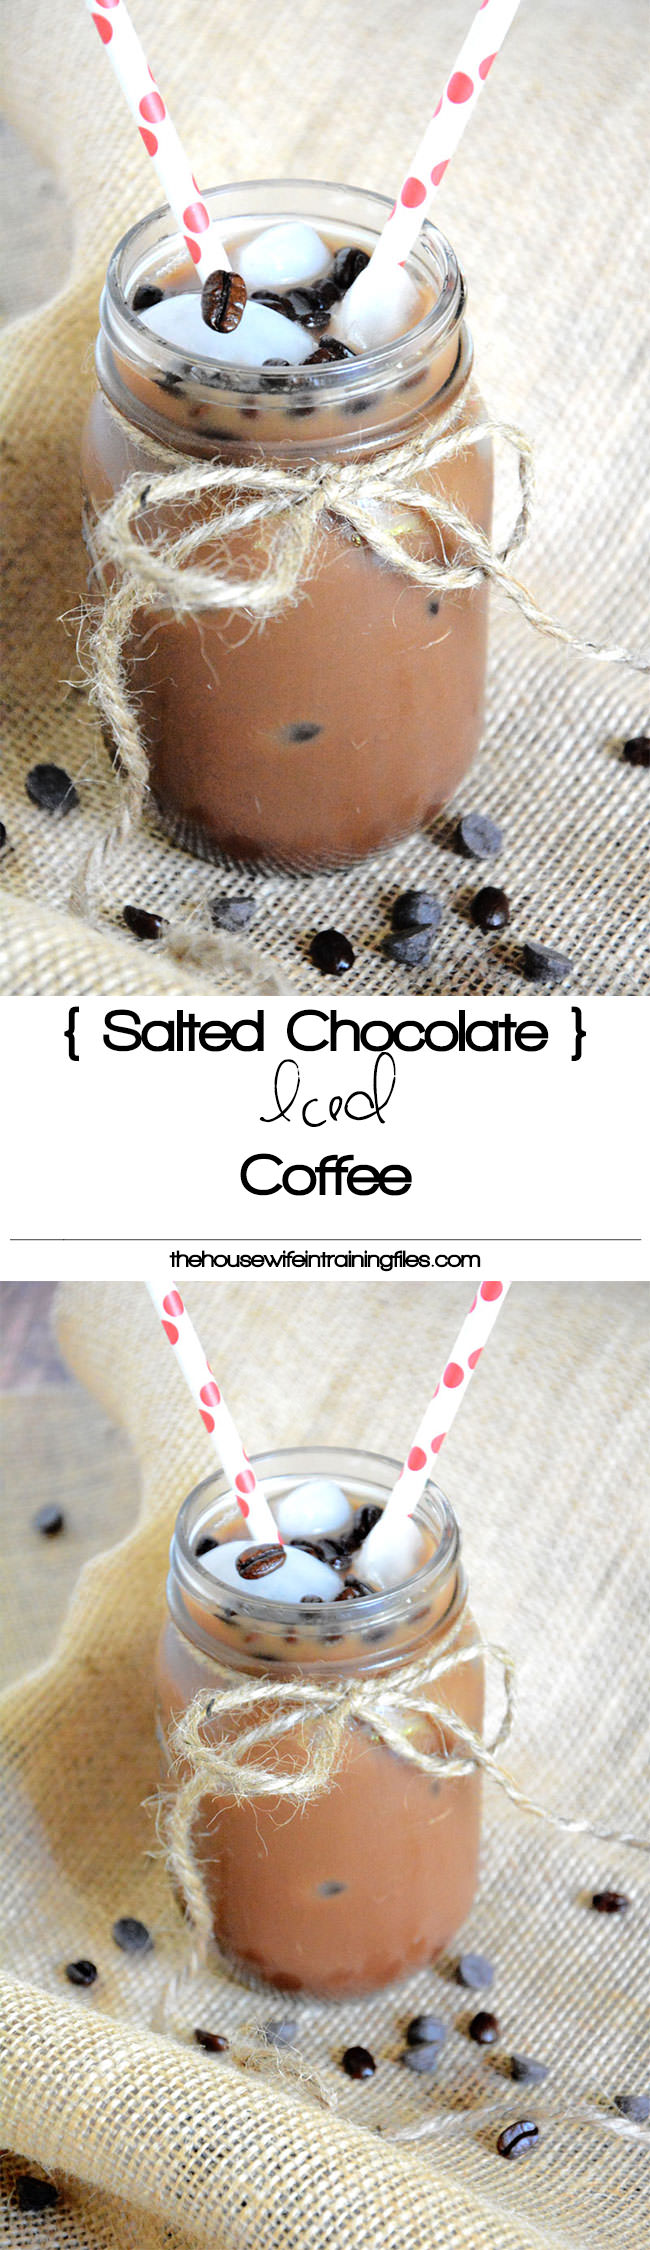 A coffee house inspired drink that is healthier and easier on your wallet, yet bursting with espresso, chocolate and a sprinkle of salt! #icedcoffee #glutenfree #dairyfree #chocolate